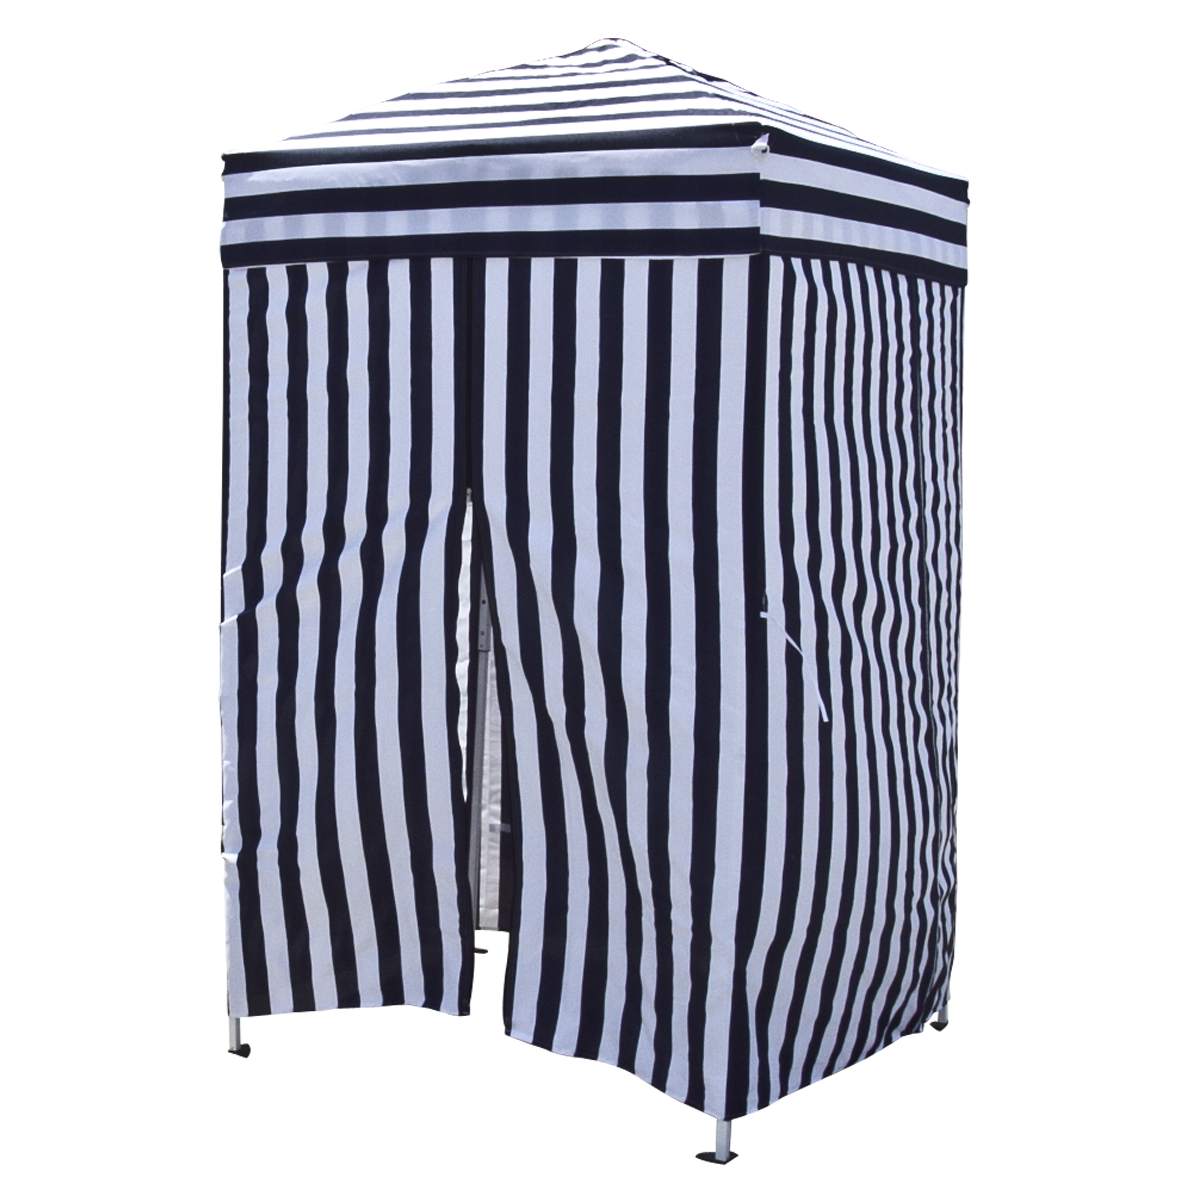 Pop Up Cabana : Portable cabana stripe changing room privacy tent pool